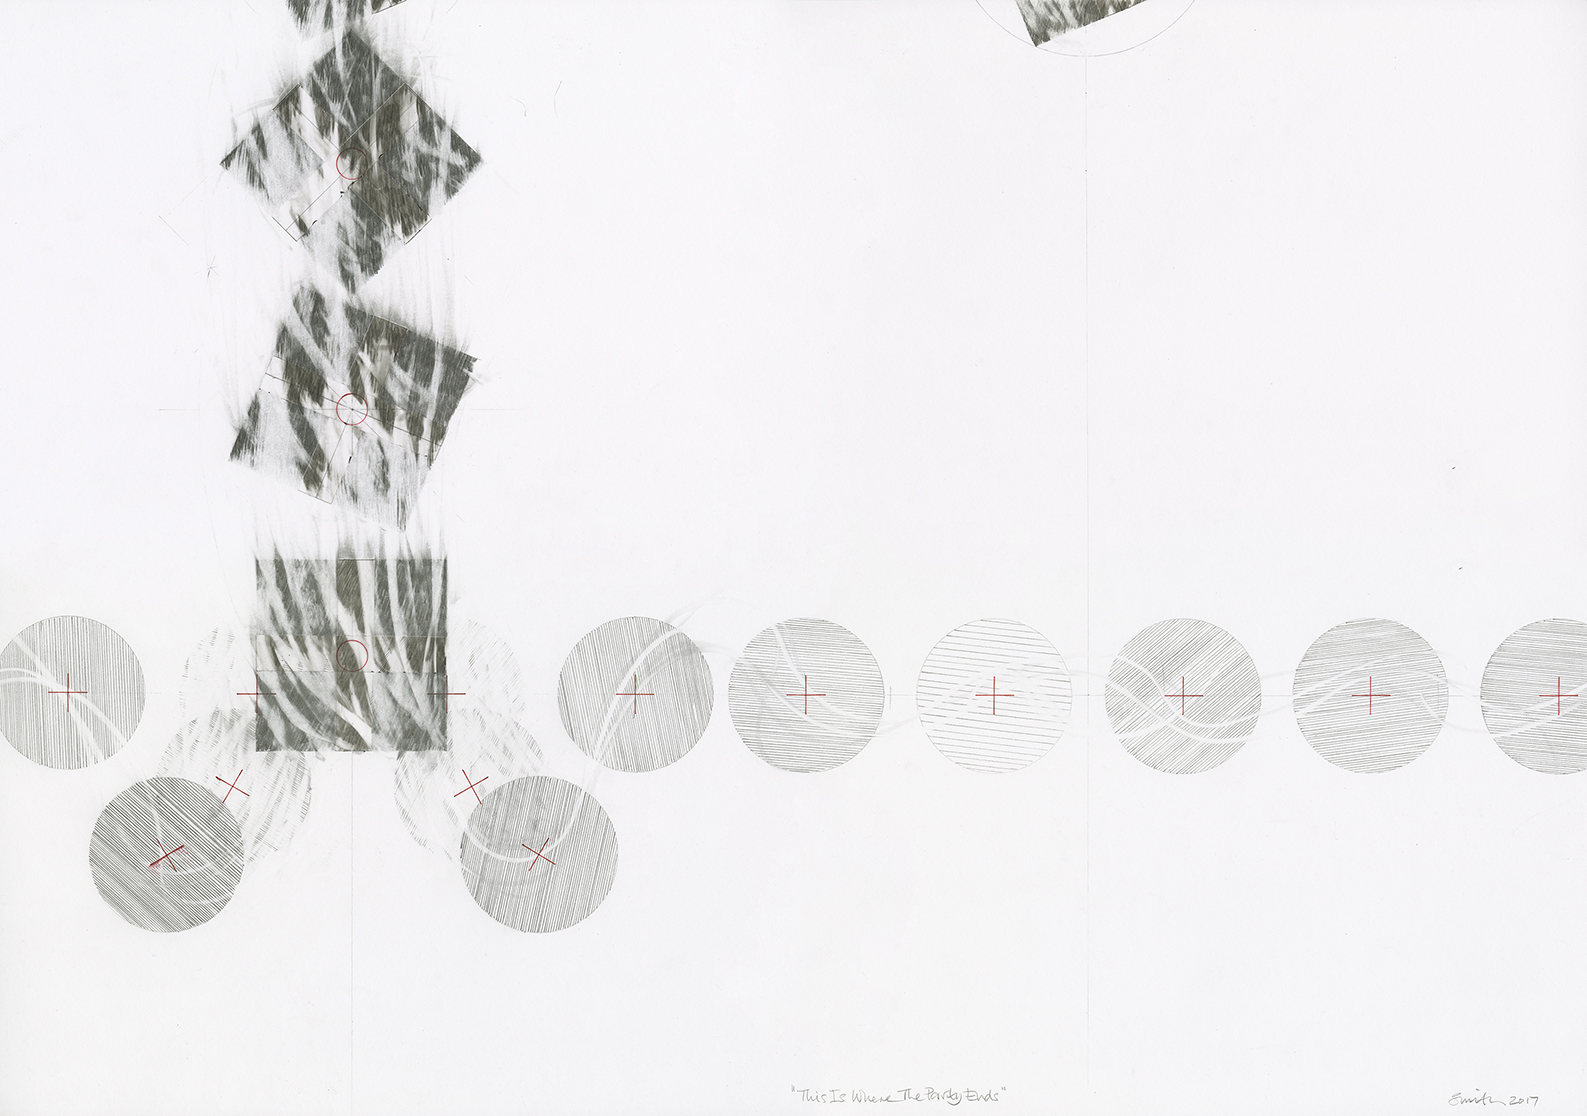 David Smith 'Abstract Drawings For Dummies lll: The Ordering Machine'